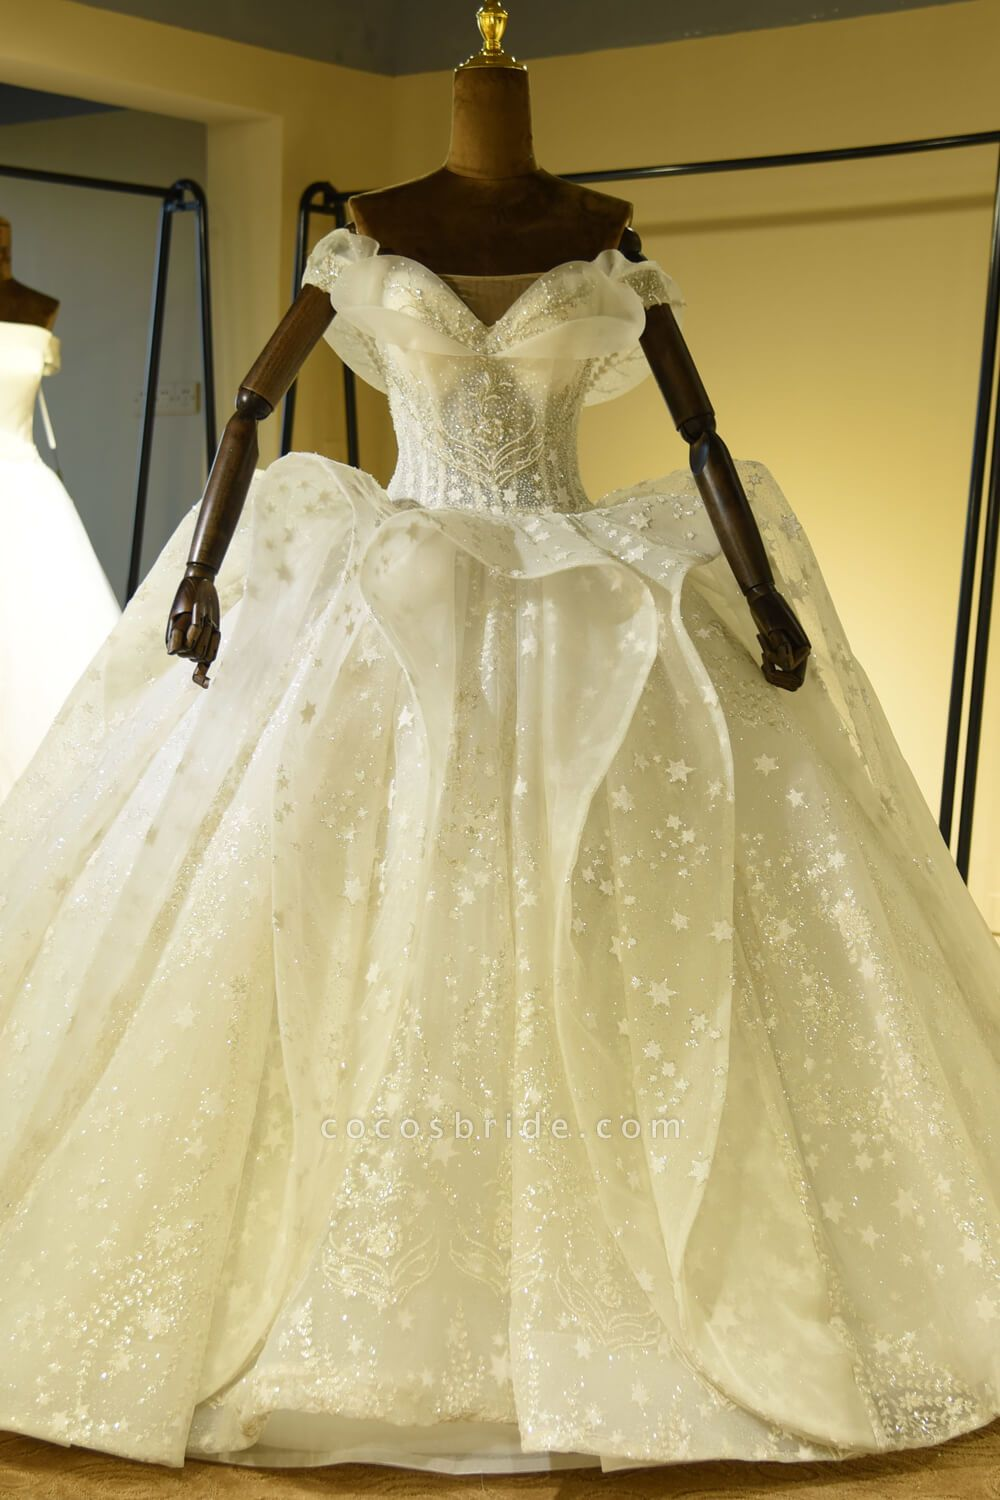 Eye-catching Lace-up Tulle Ball Gown Wedding Dress